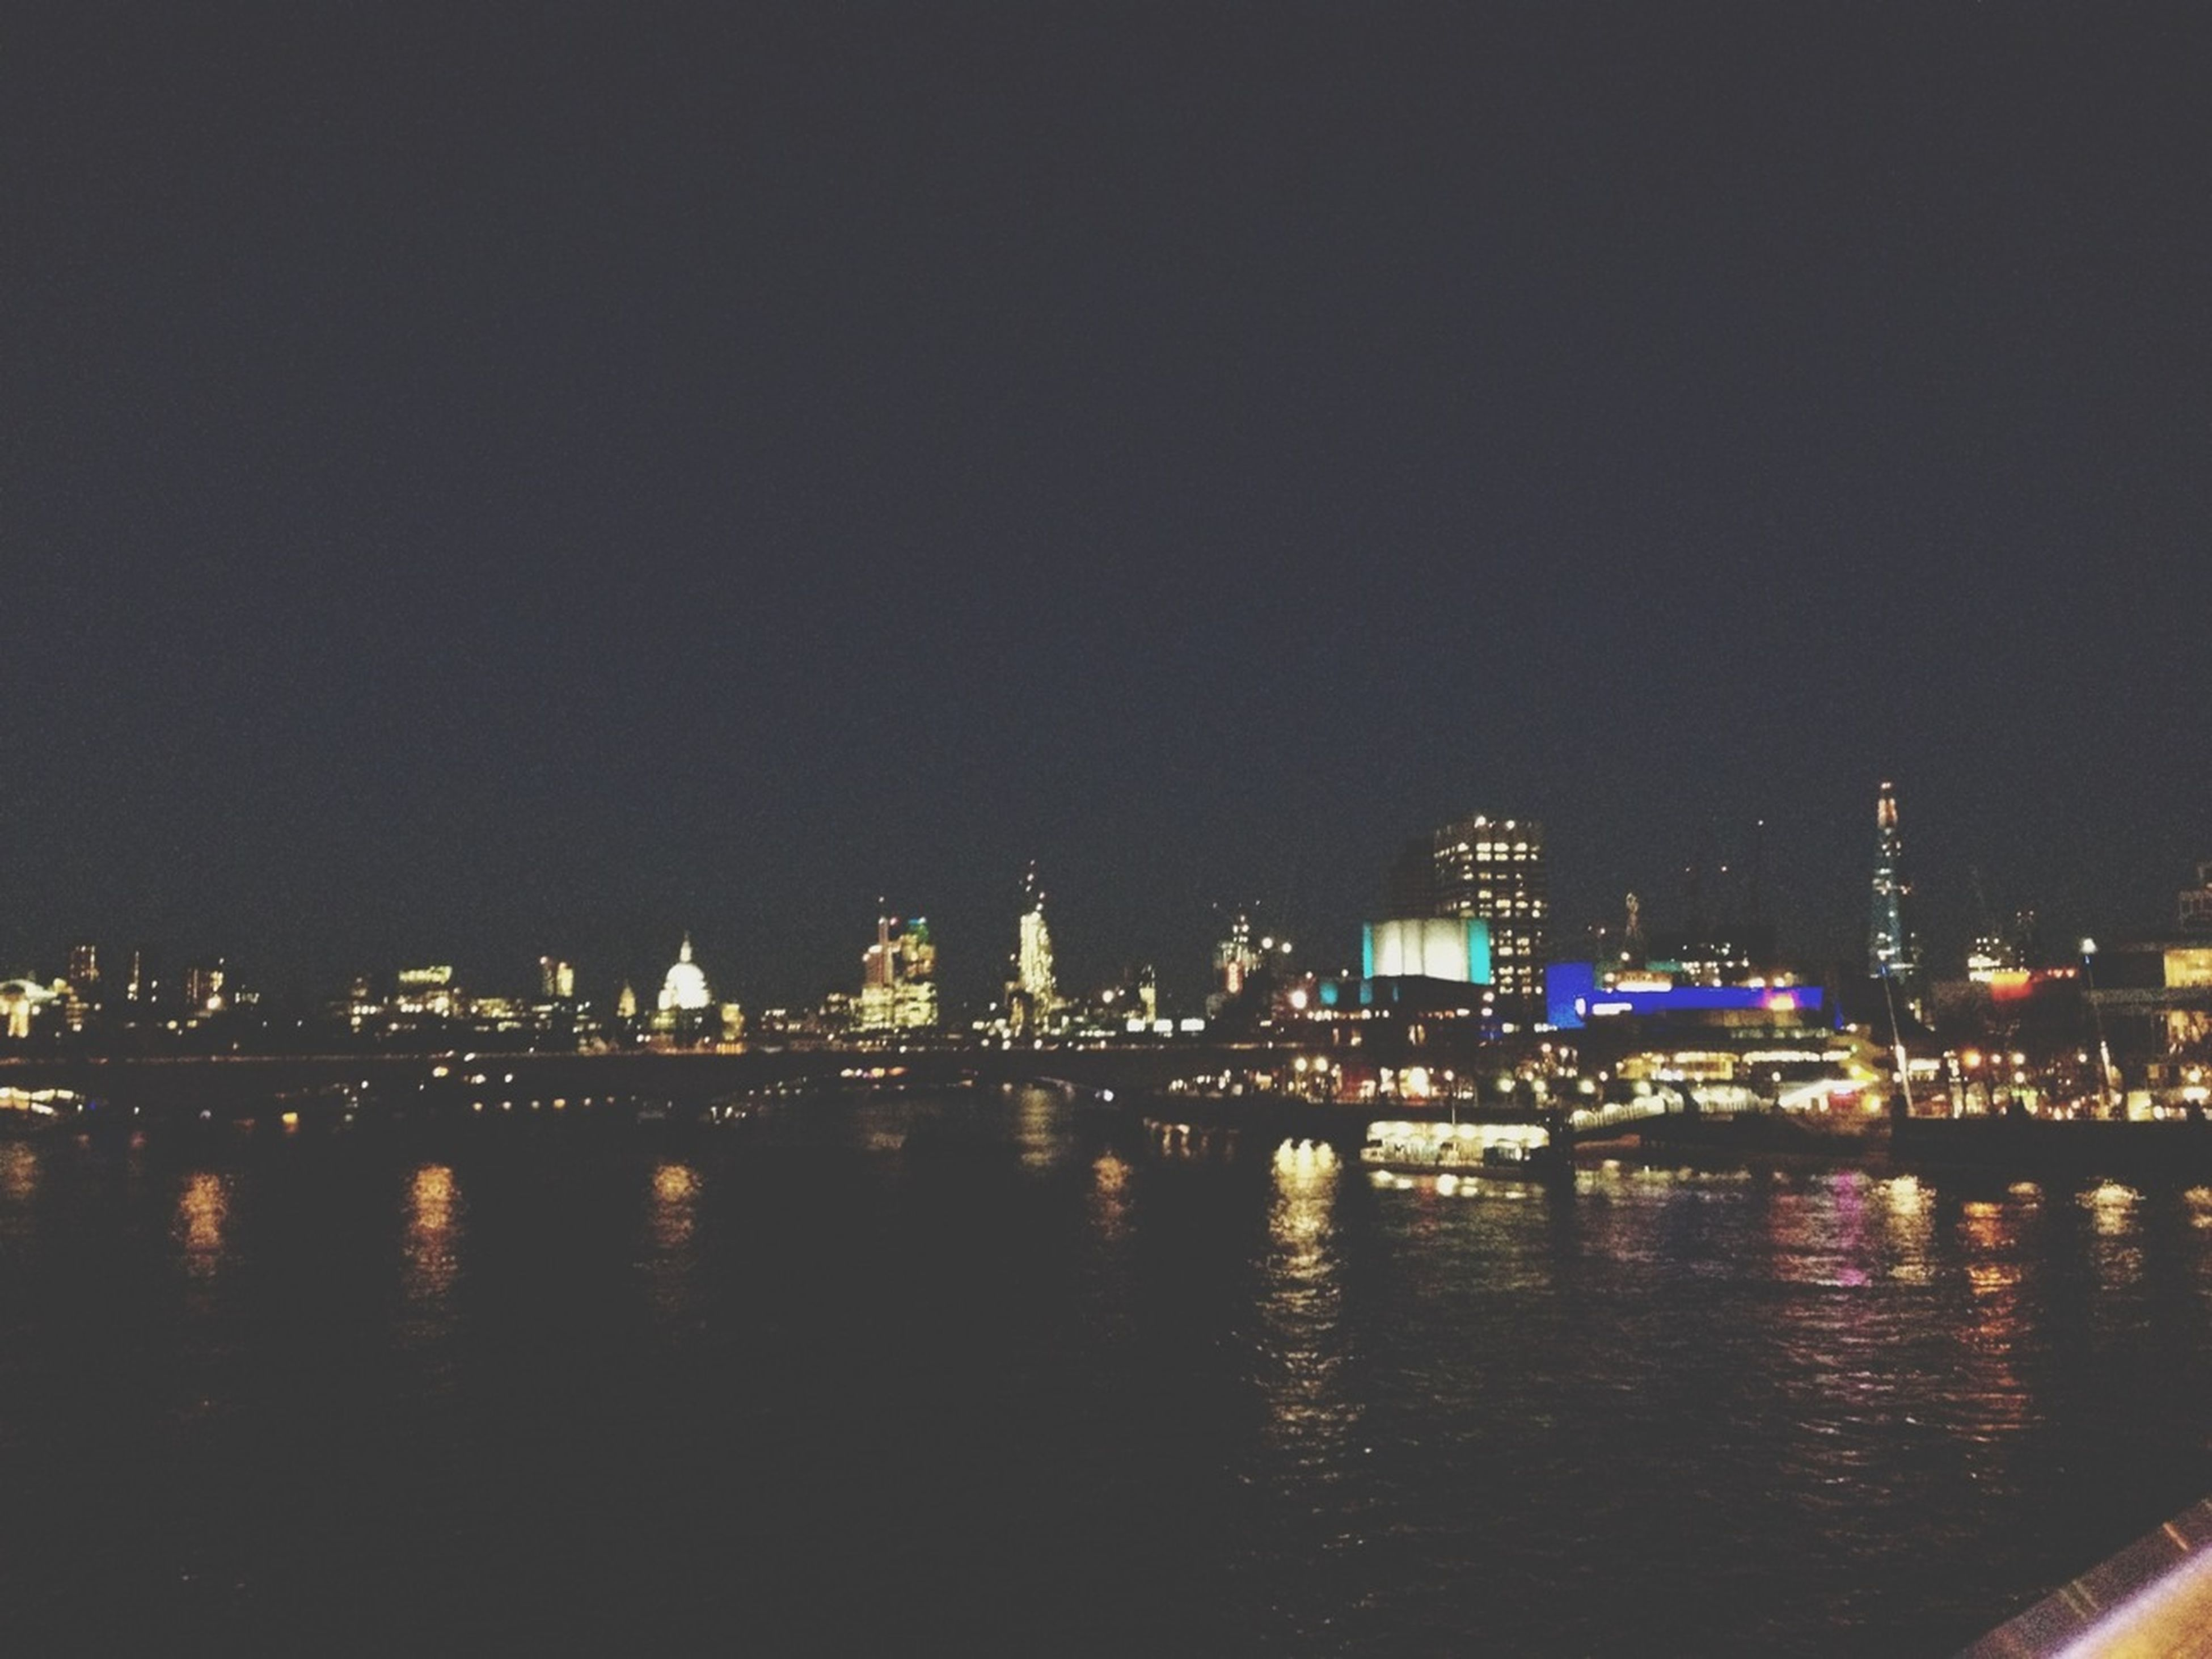 night, illuminated, water, waterfront, building exterior, architecture, built structure, reflection, river, city, copy space, clear sky, lighting equipment, sky, outdoors, no people, sea, lake, dark, street light